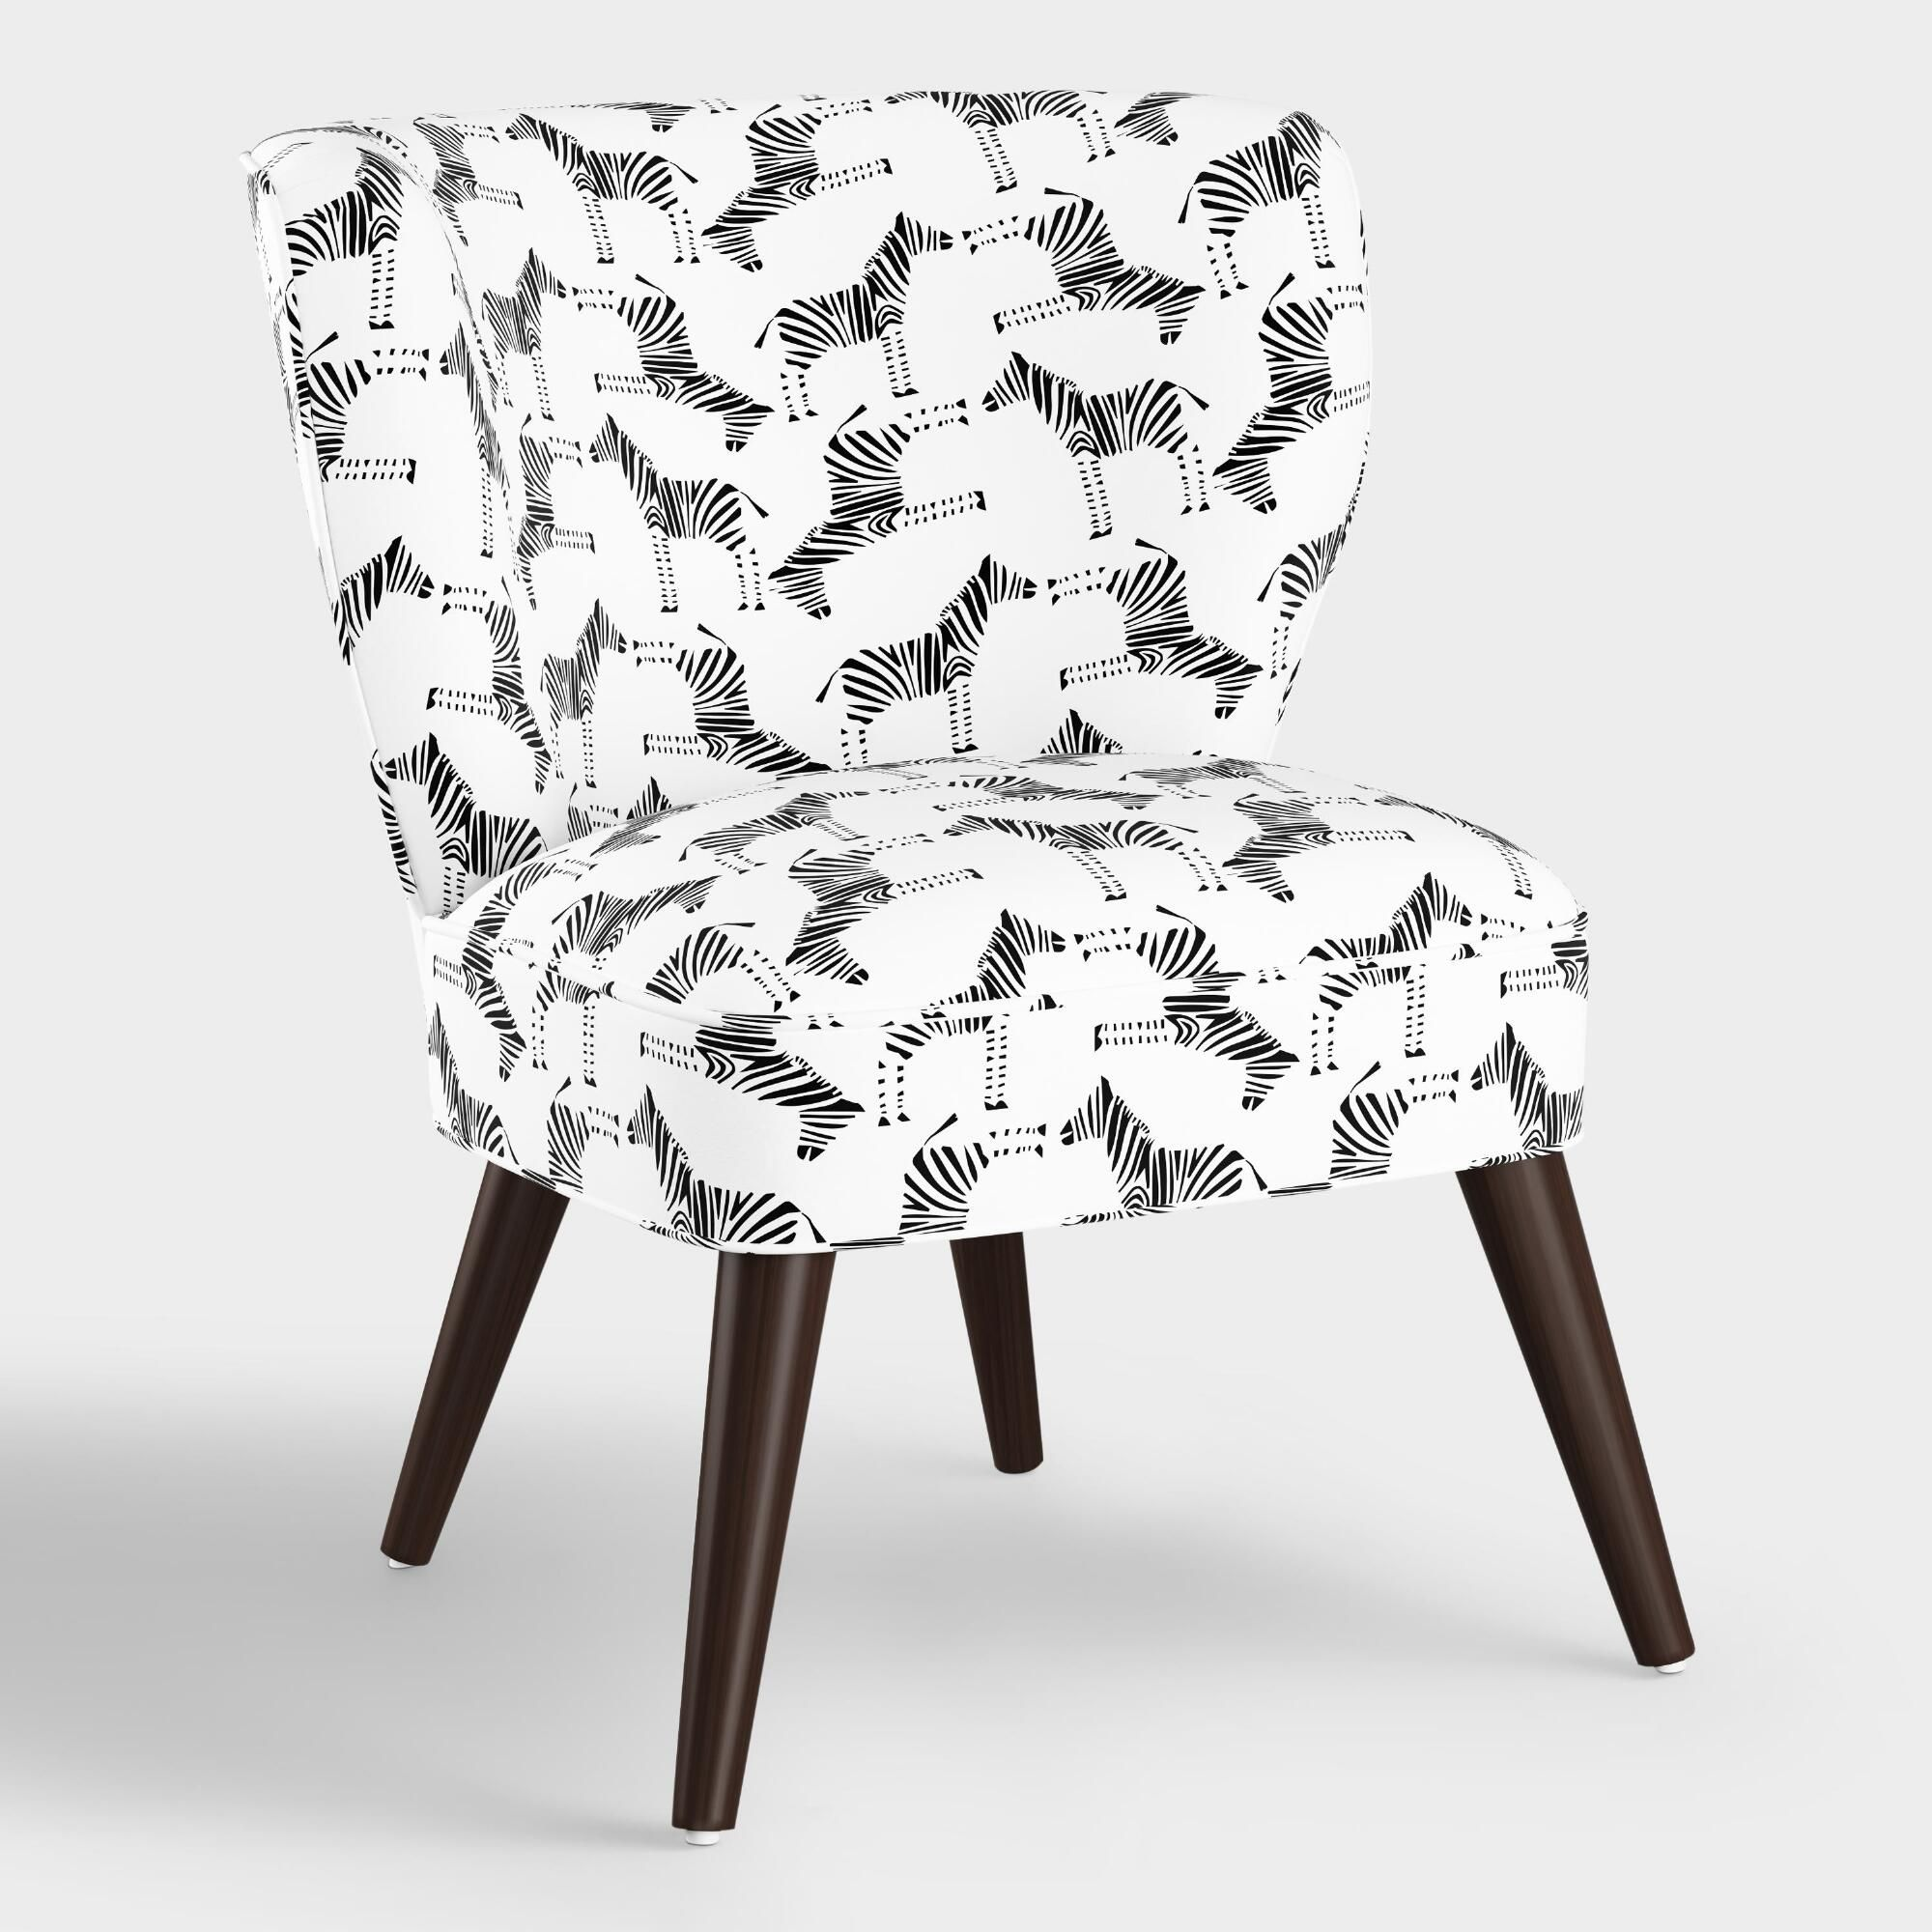 Block Print Zebra Carlye Upholstered Chair By World Market Upholstered Chairs Affordable Chair Zebra Chair #zebra #chairs #for #living #room